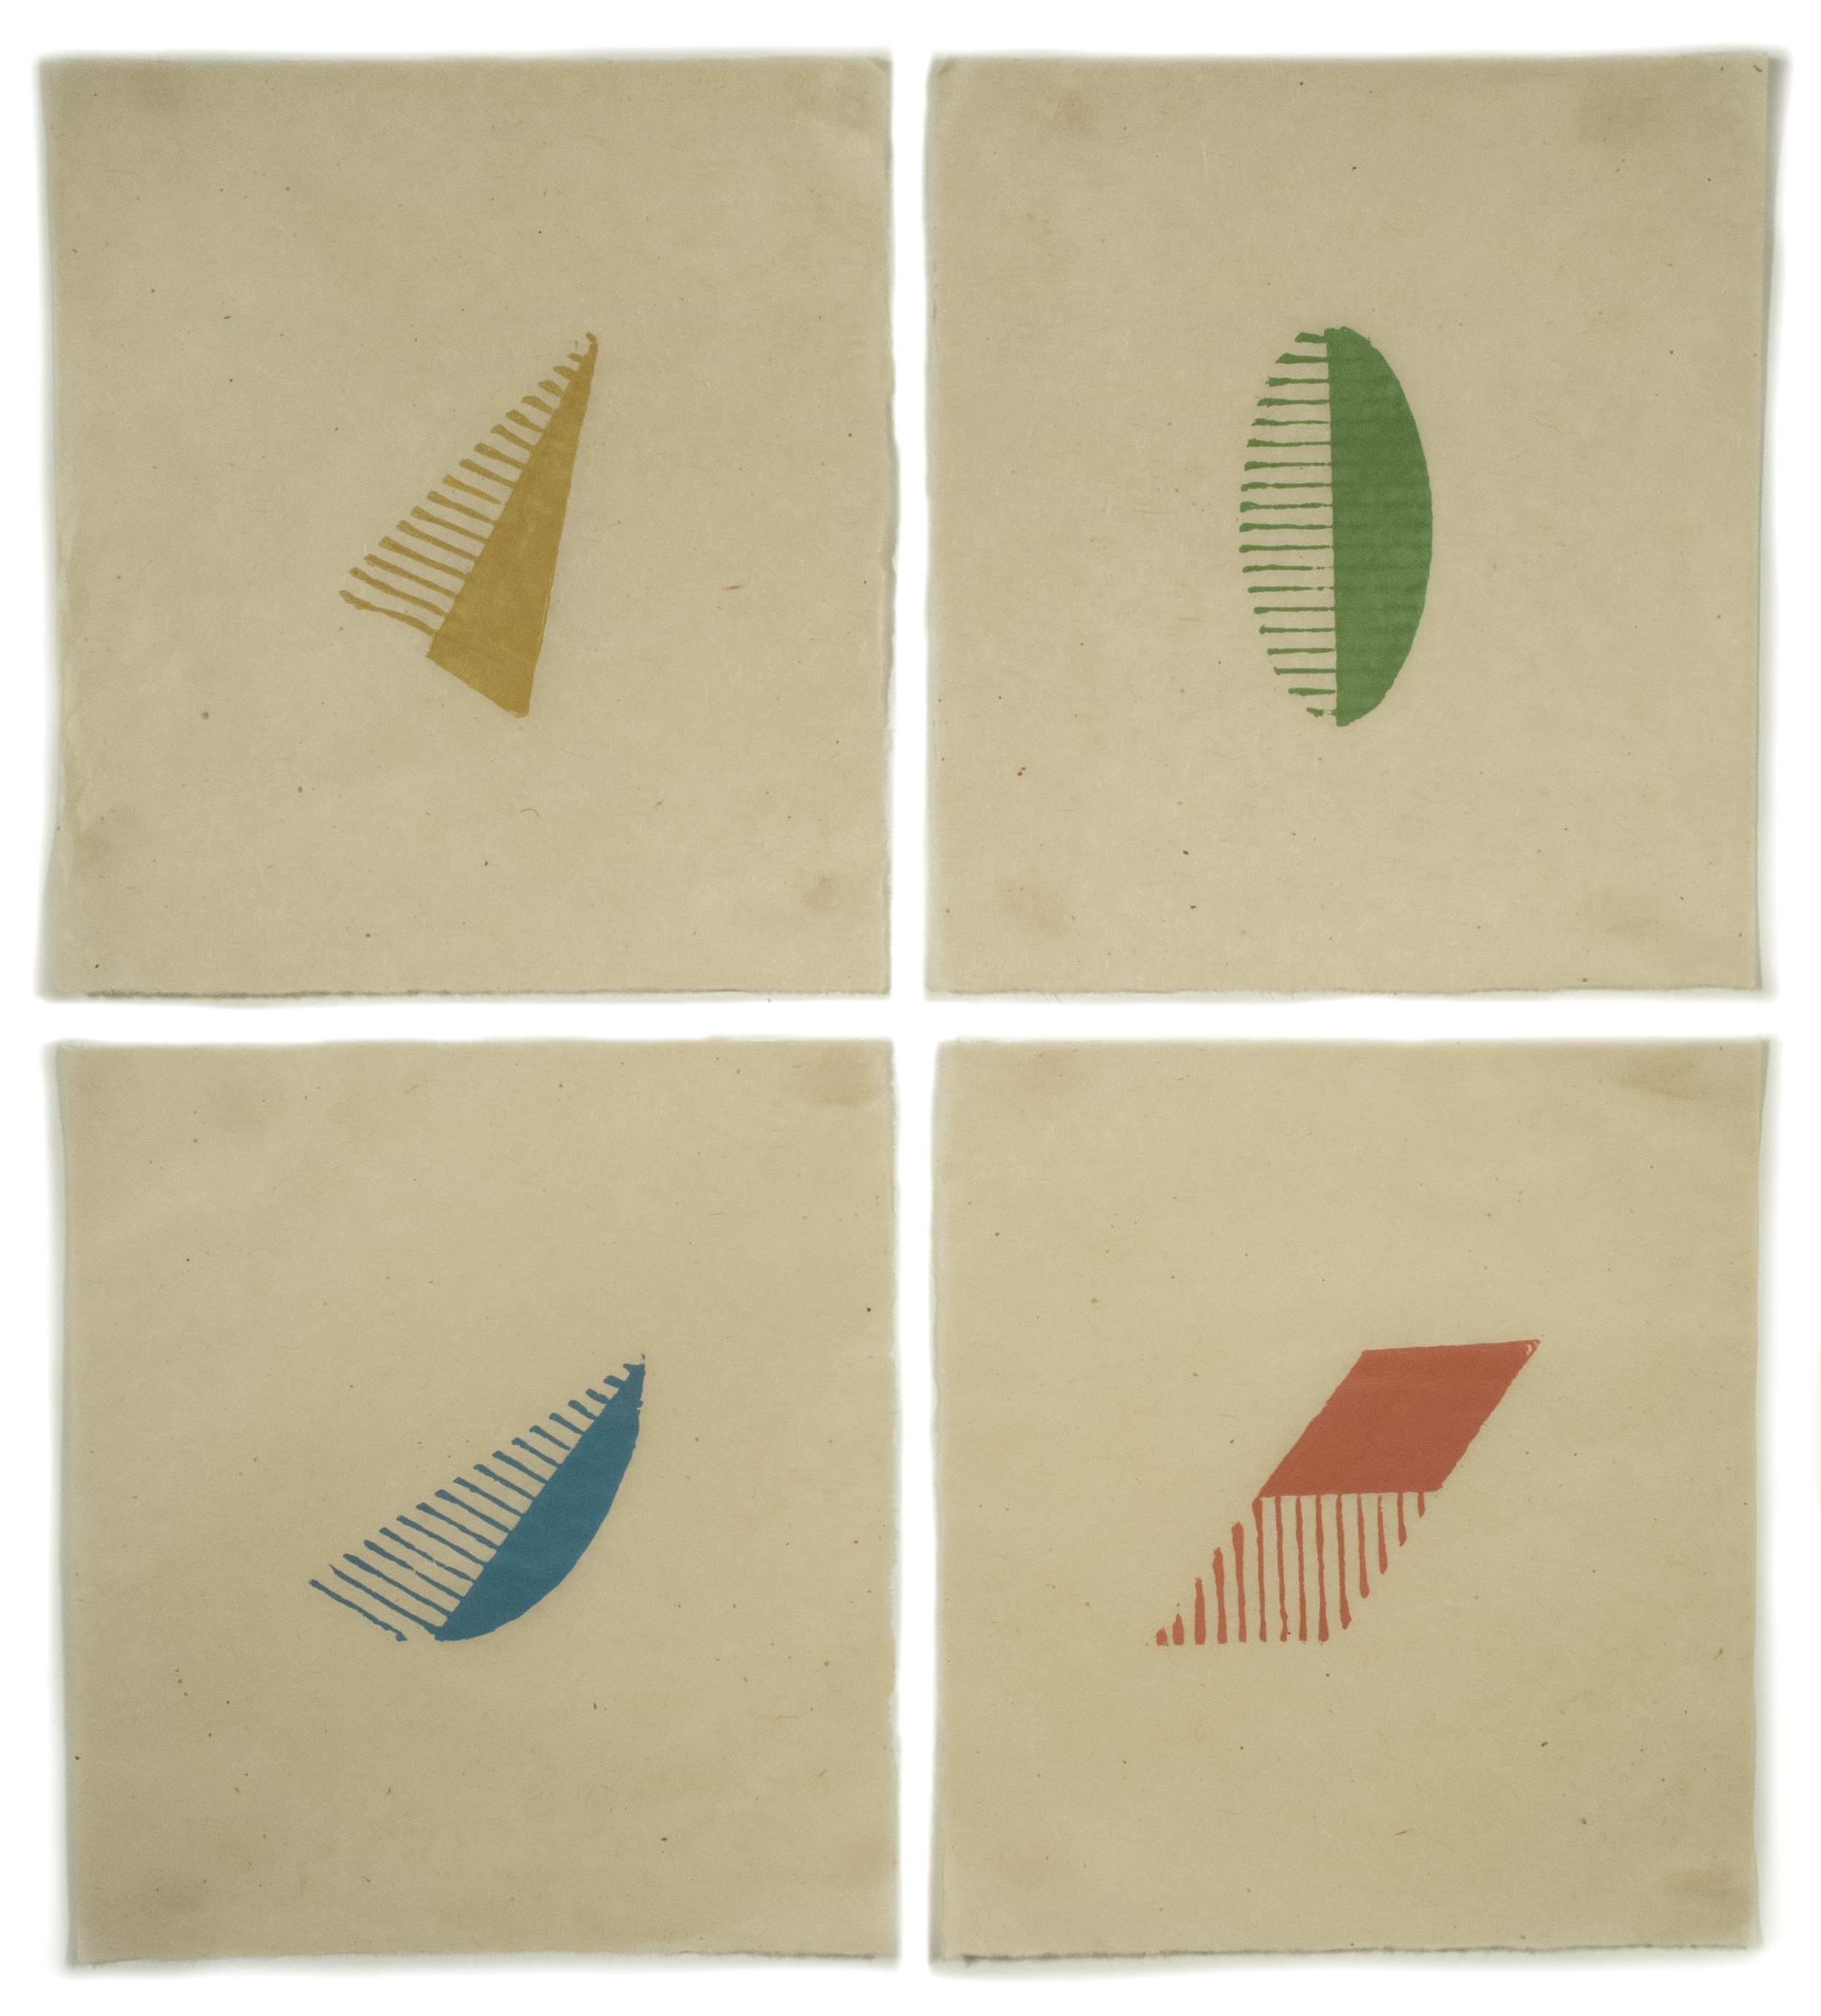 Altoon Sultan: Four Shapes Four Shapes, 2012, print, image variable: ca. 5 x 6, paper 4 pieces, 14 x 12 1/2 each, Edition size 5, Artist\'s Proofs 1, paper gampi smooth